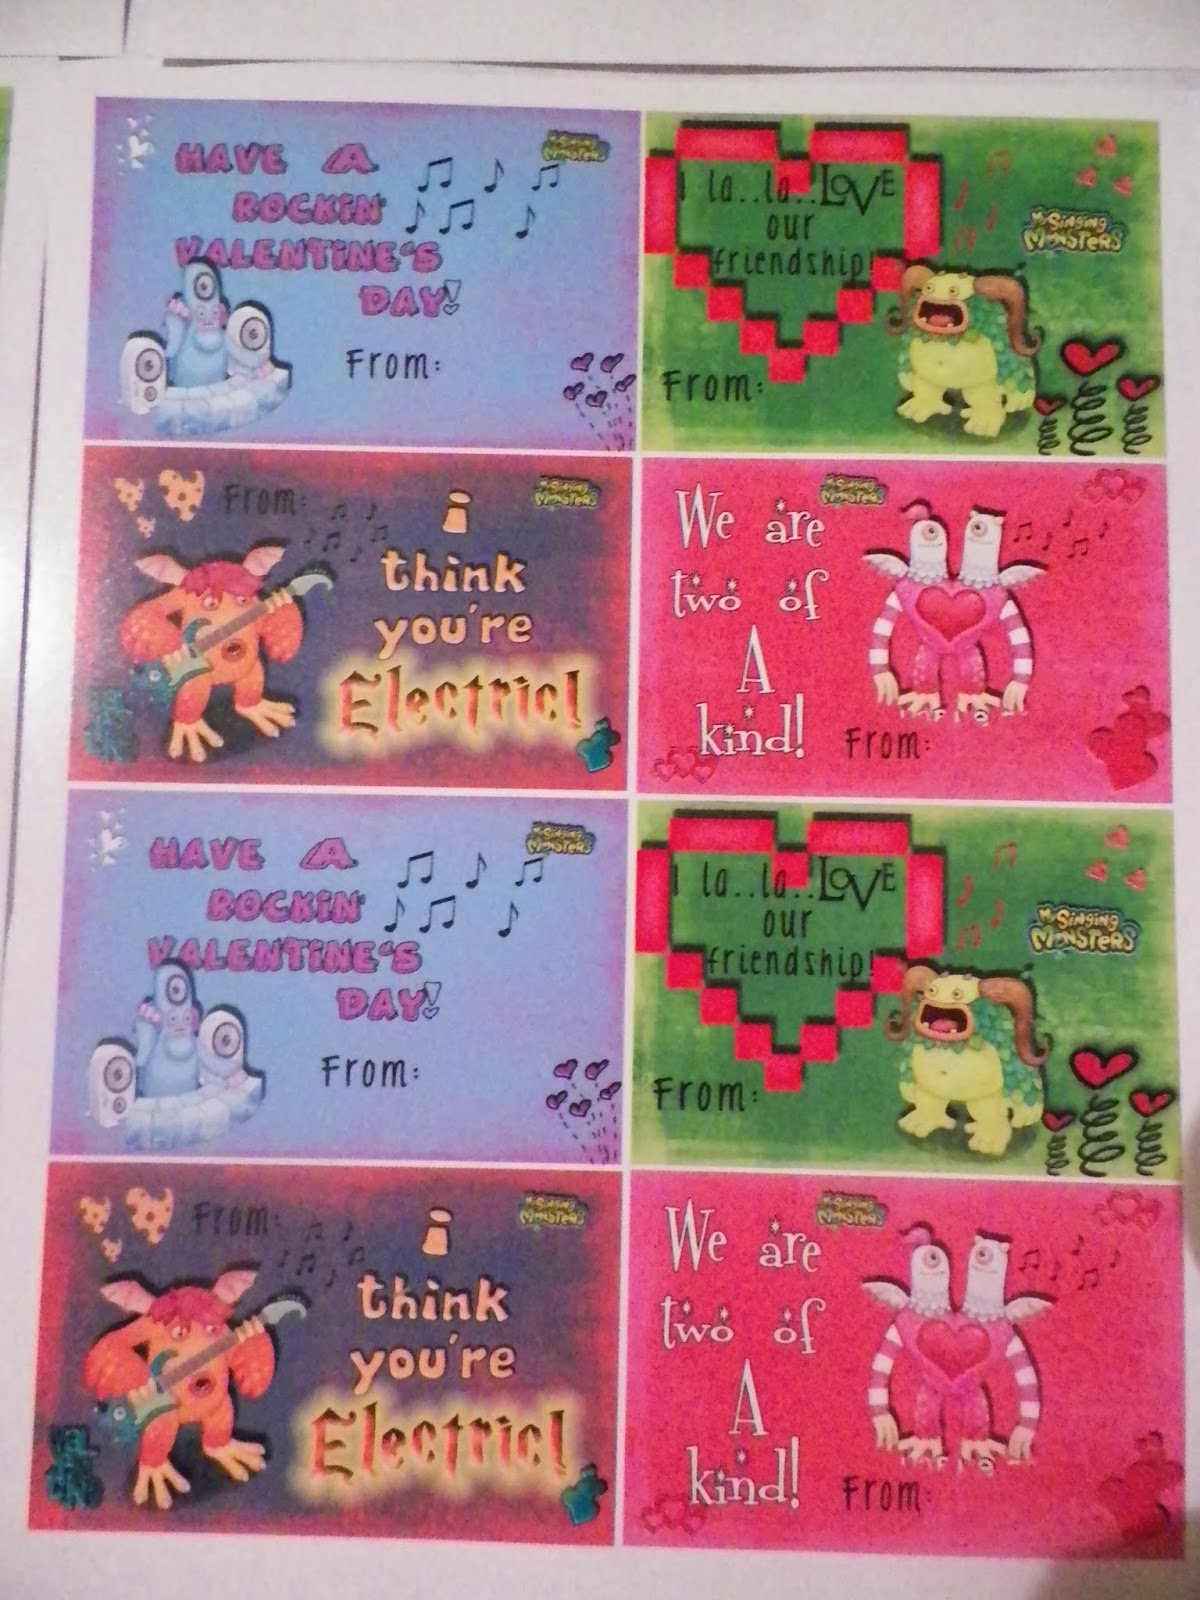 My Singing Monster's DIY Valentine Card Tut. Copyright Cassie's Creative Crafts